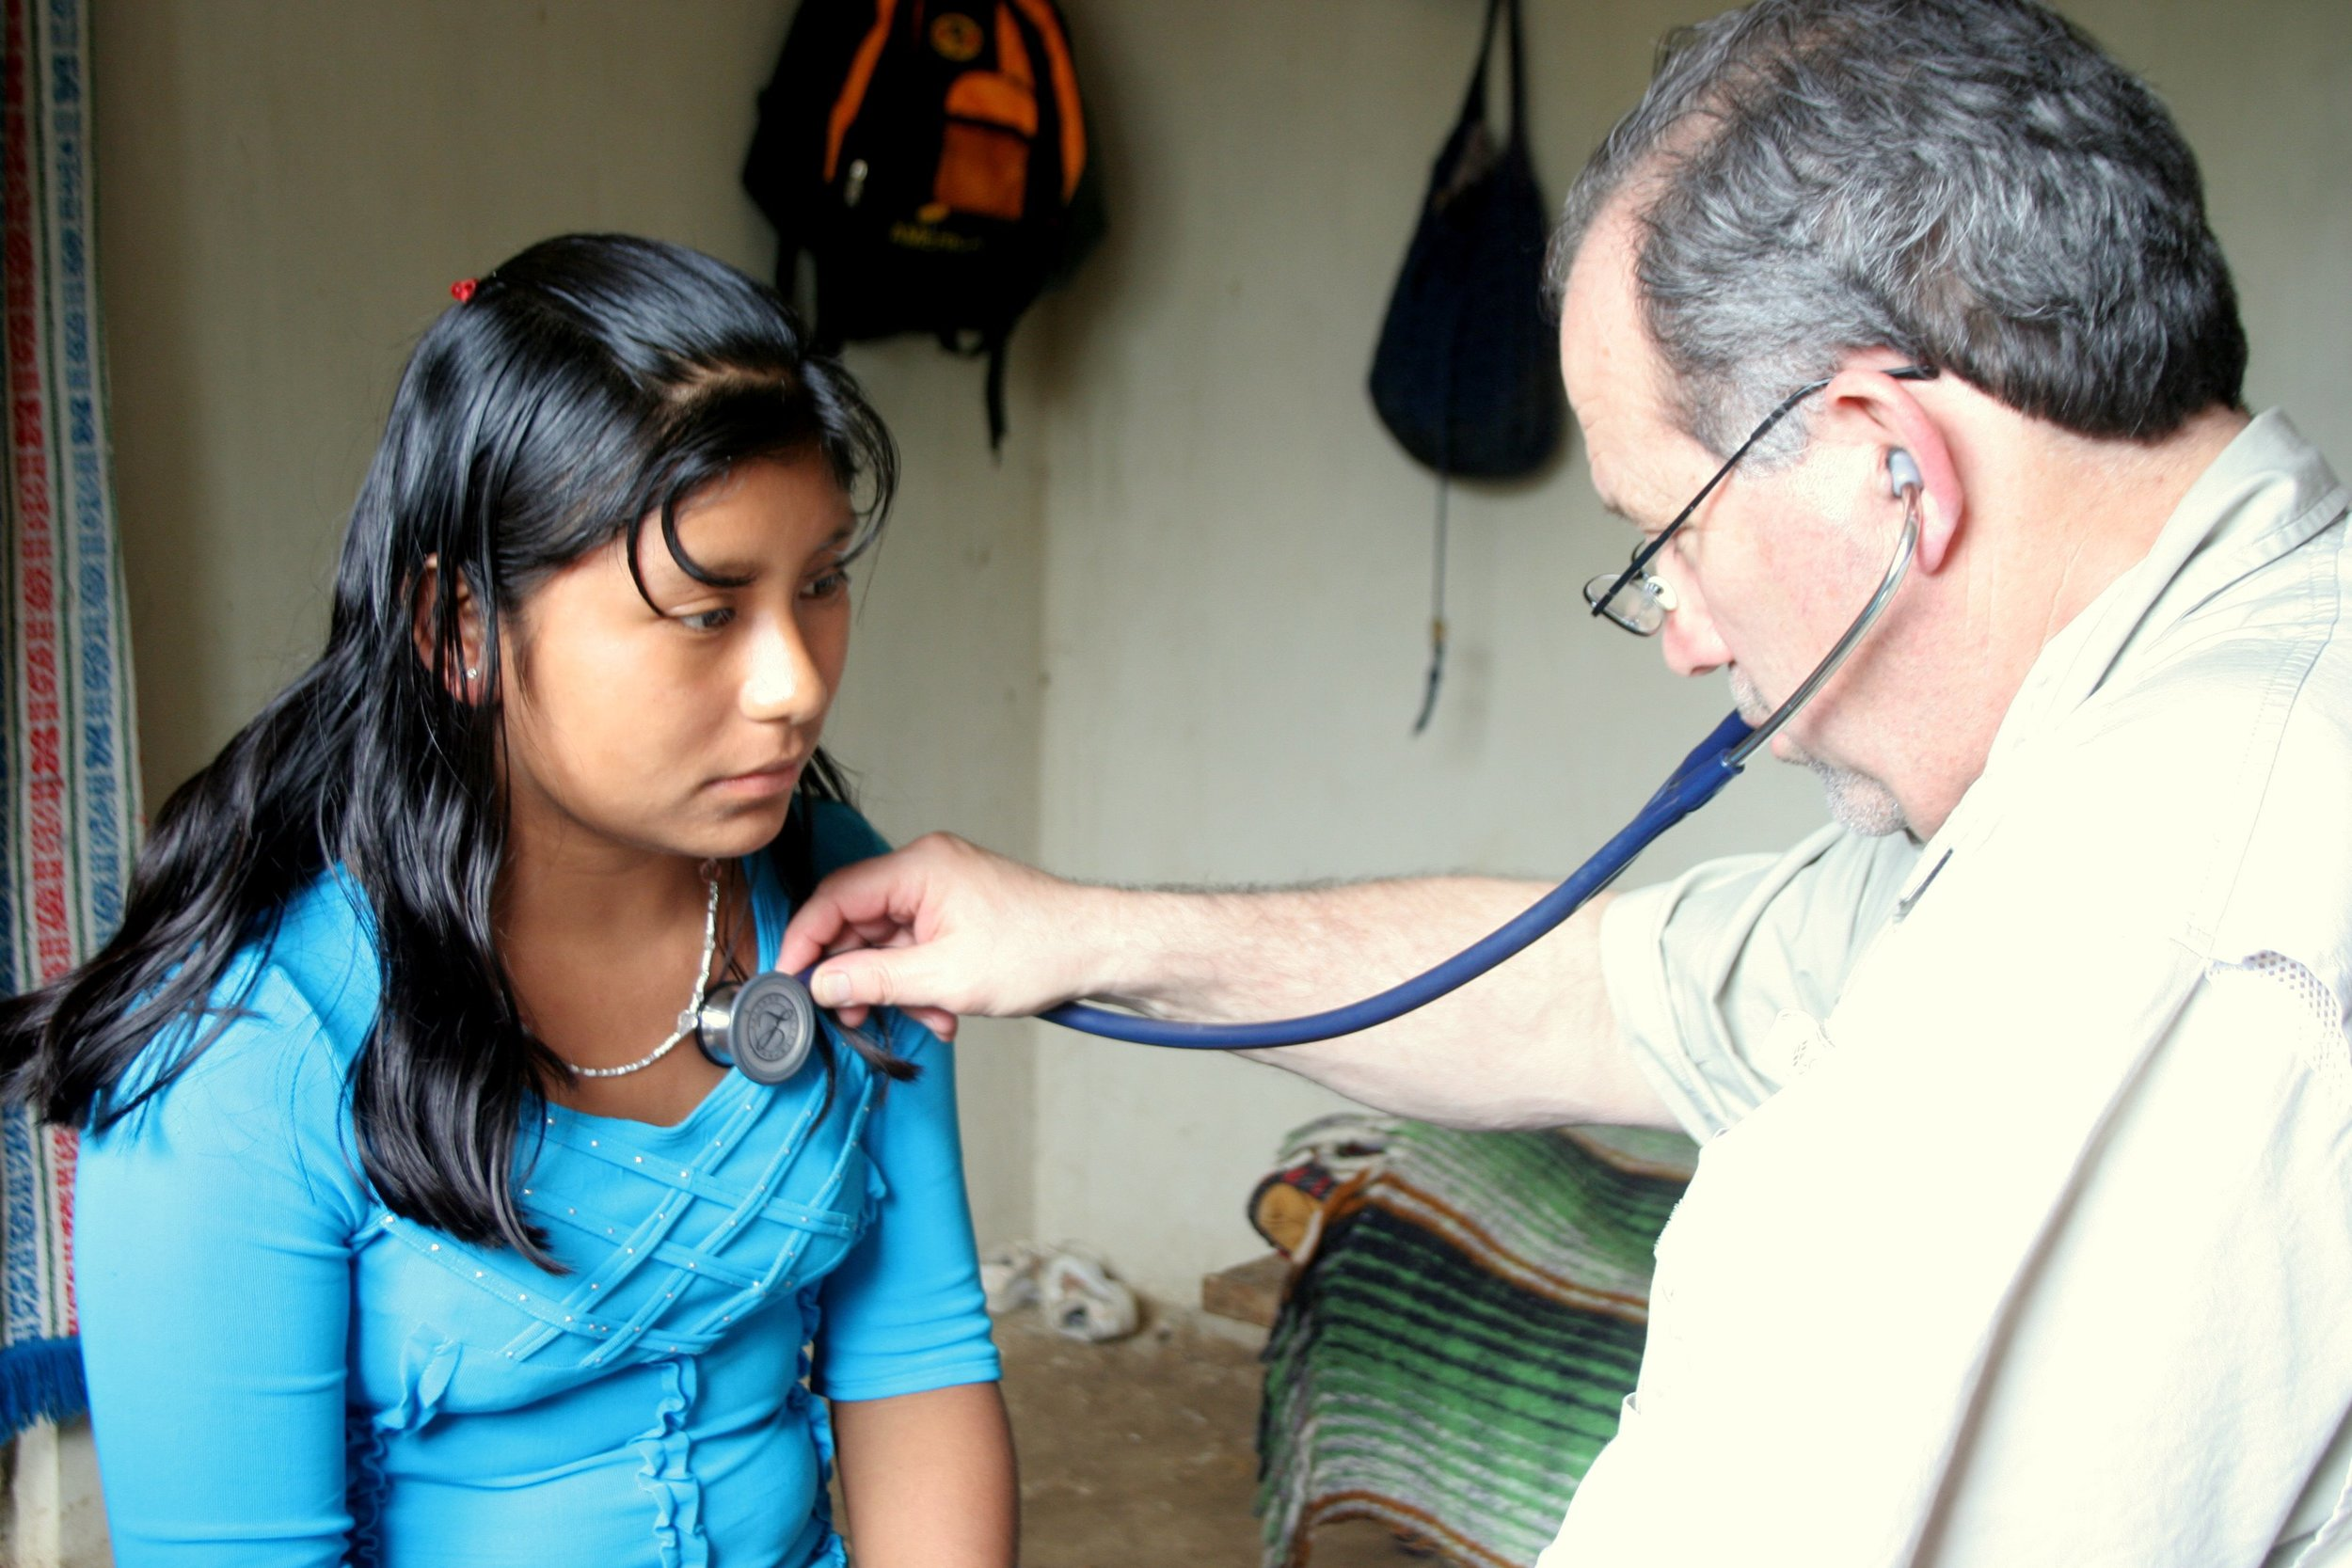 Dr. Richard Young giving medical care